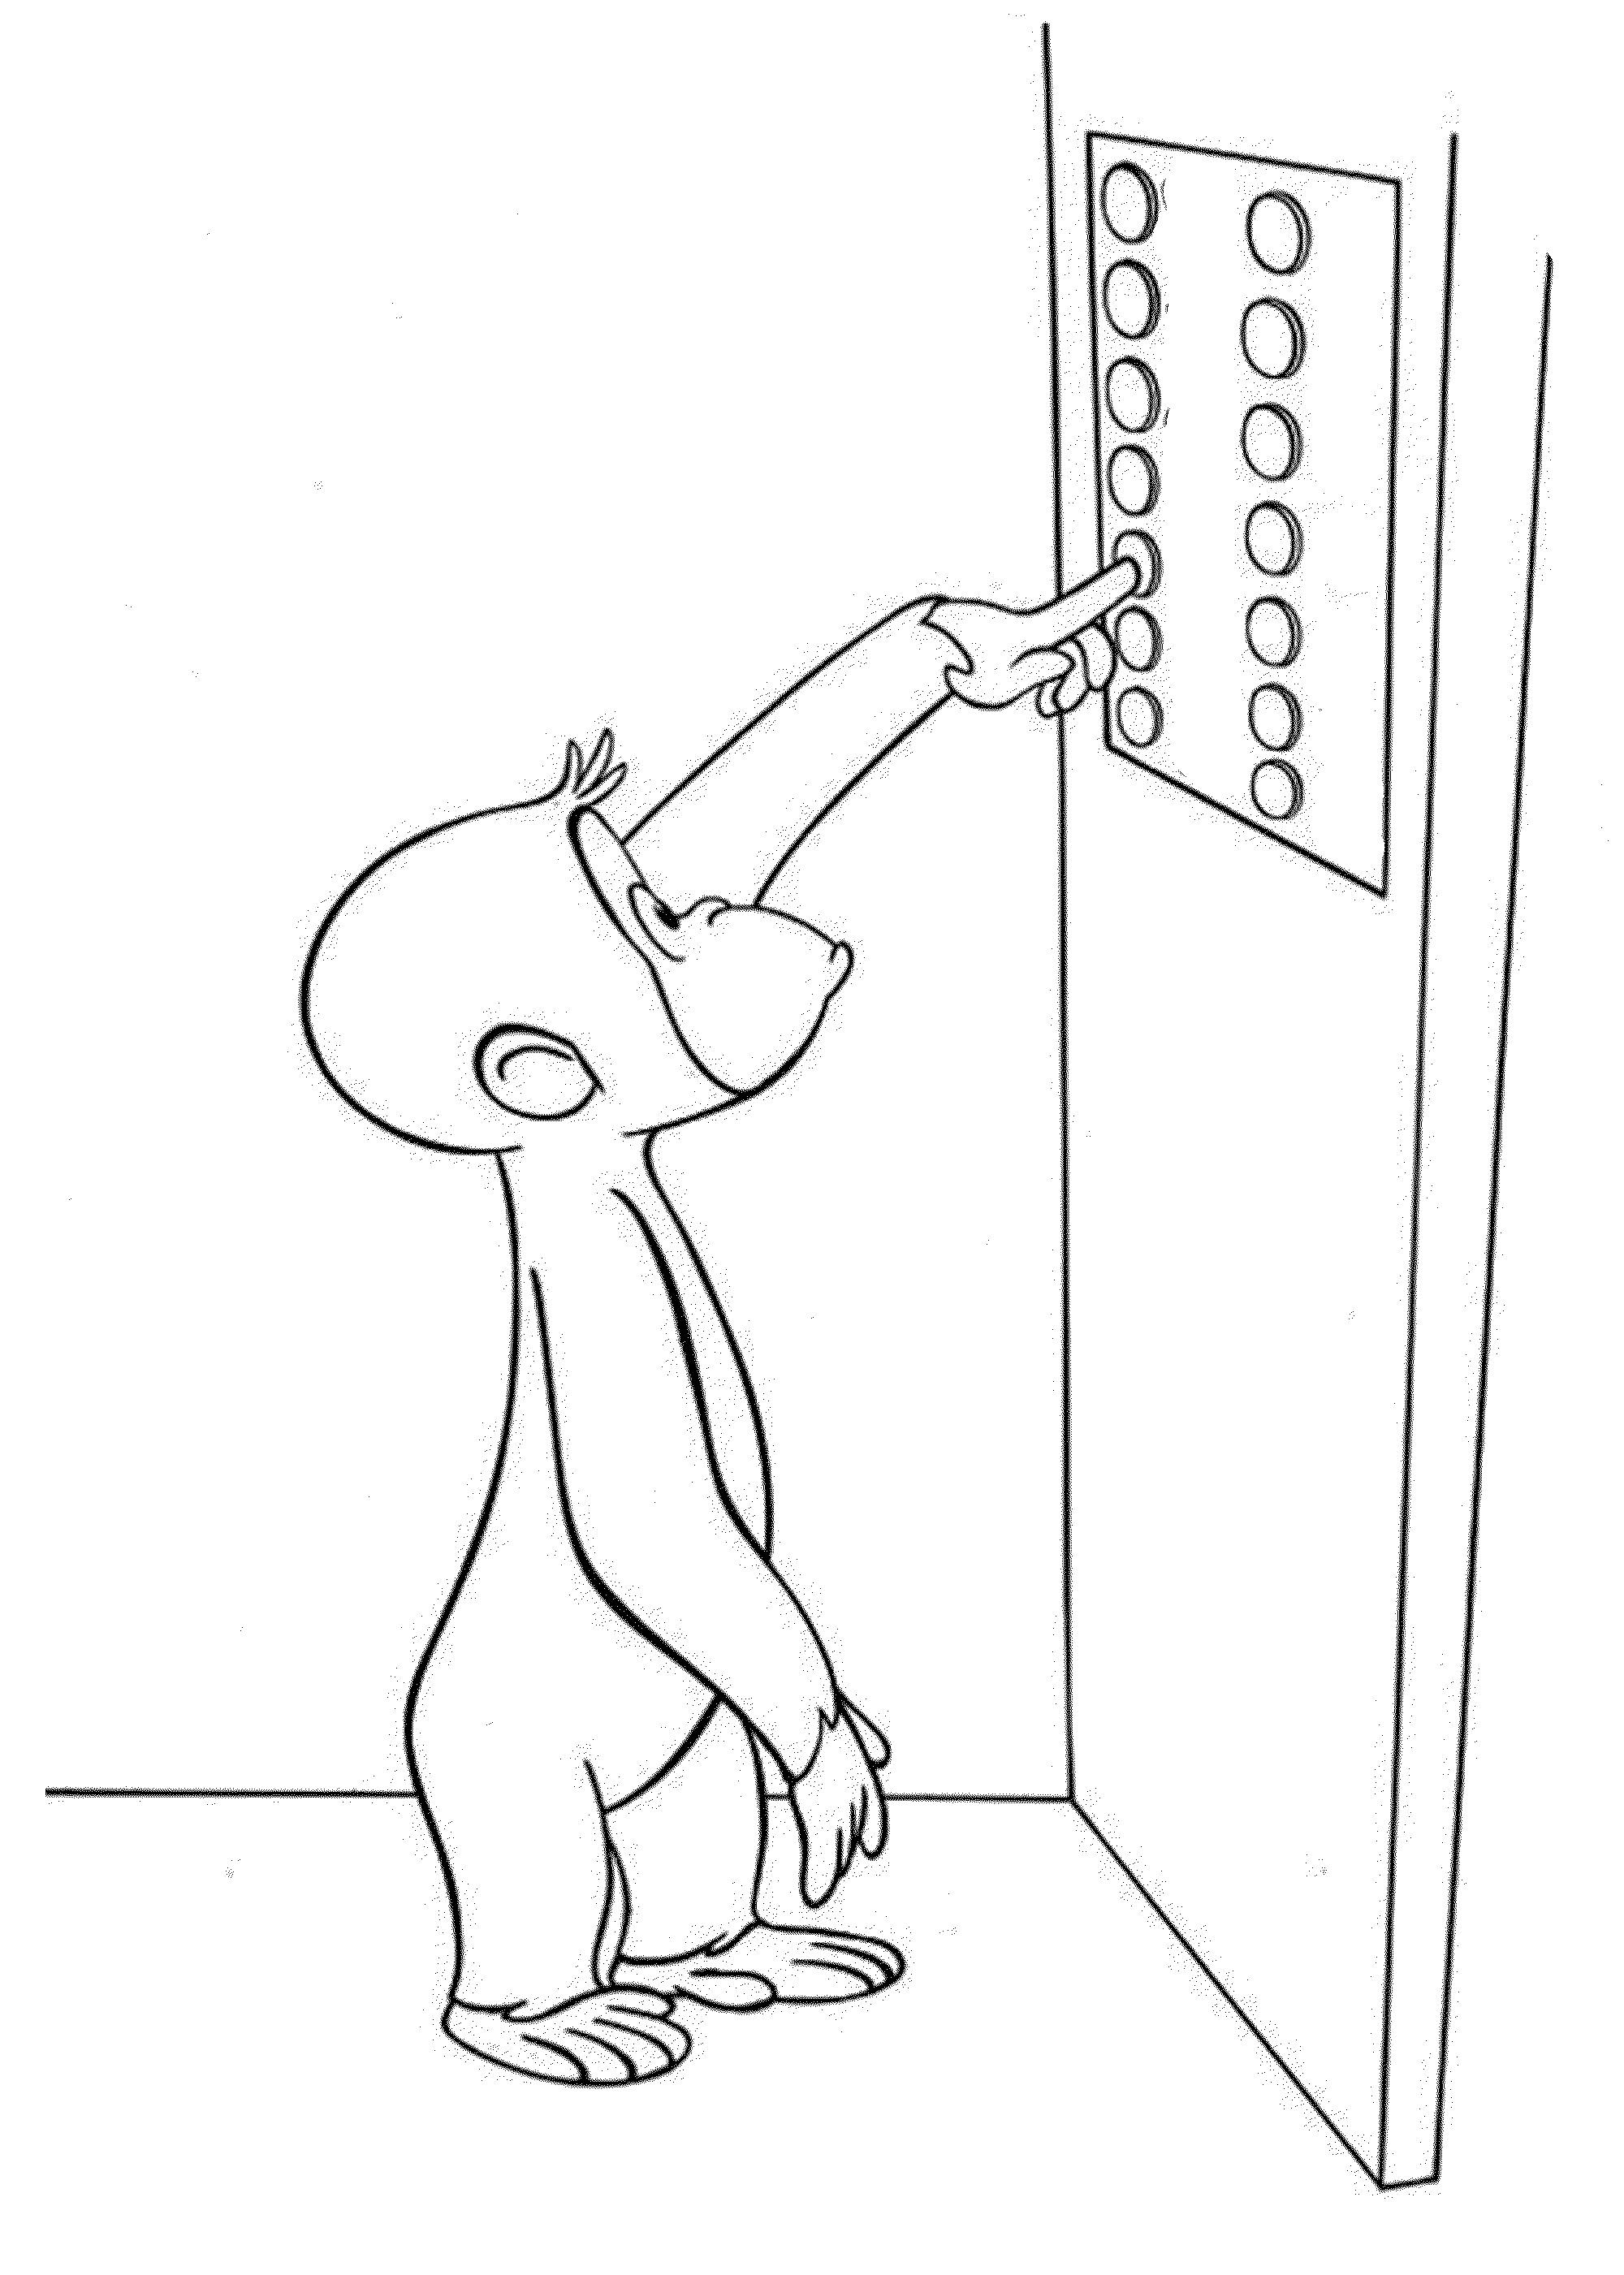 curiousgeeintheliftcoloringpages